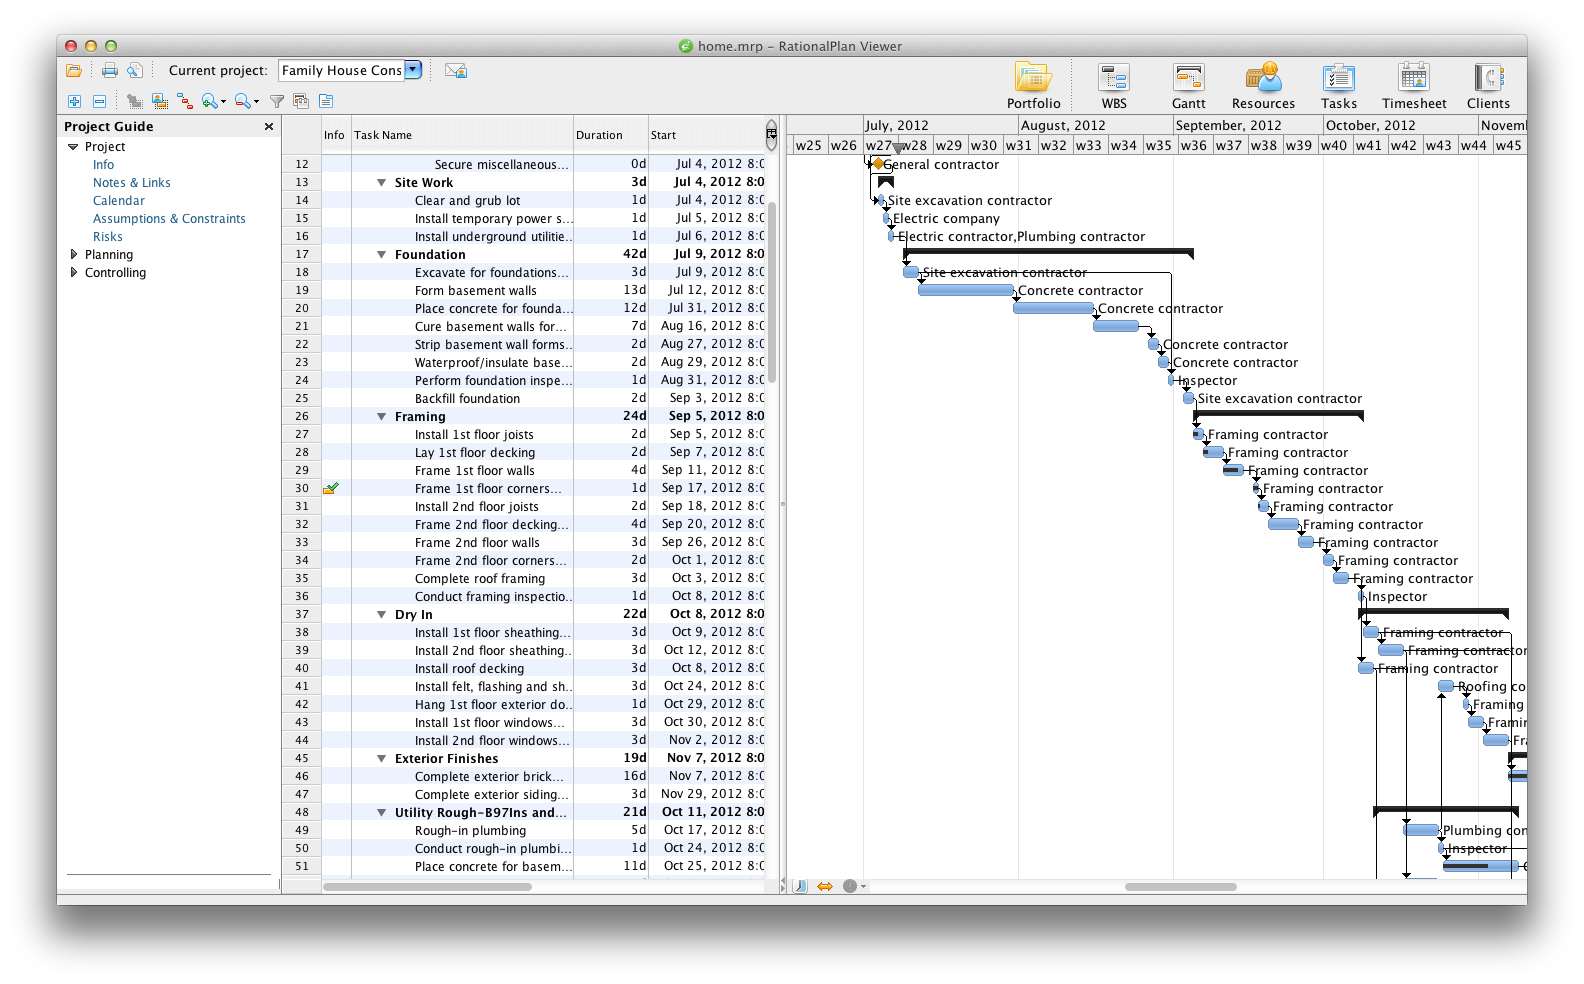 See more of RationalPlan Project Viewer for Mac